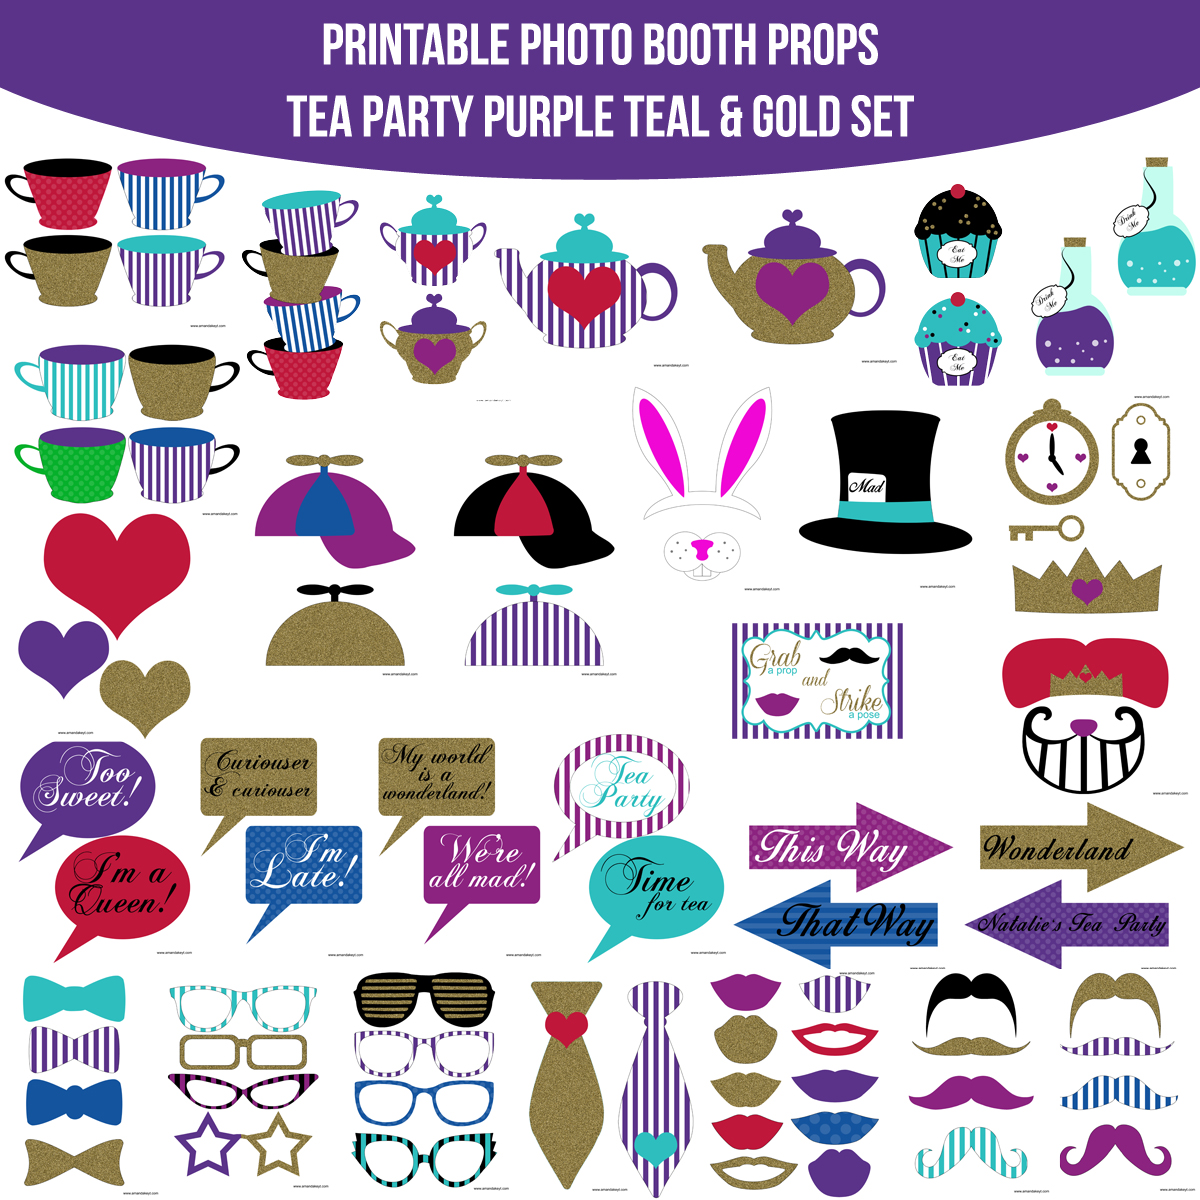 See the Set - To View The Whole Tea Party Purple Teal Gold Printable Photo Booth Prop Set Click Here